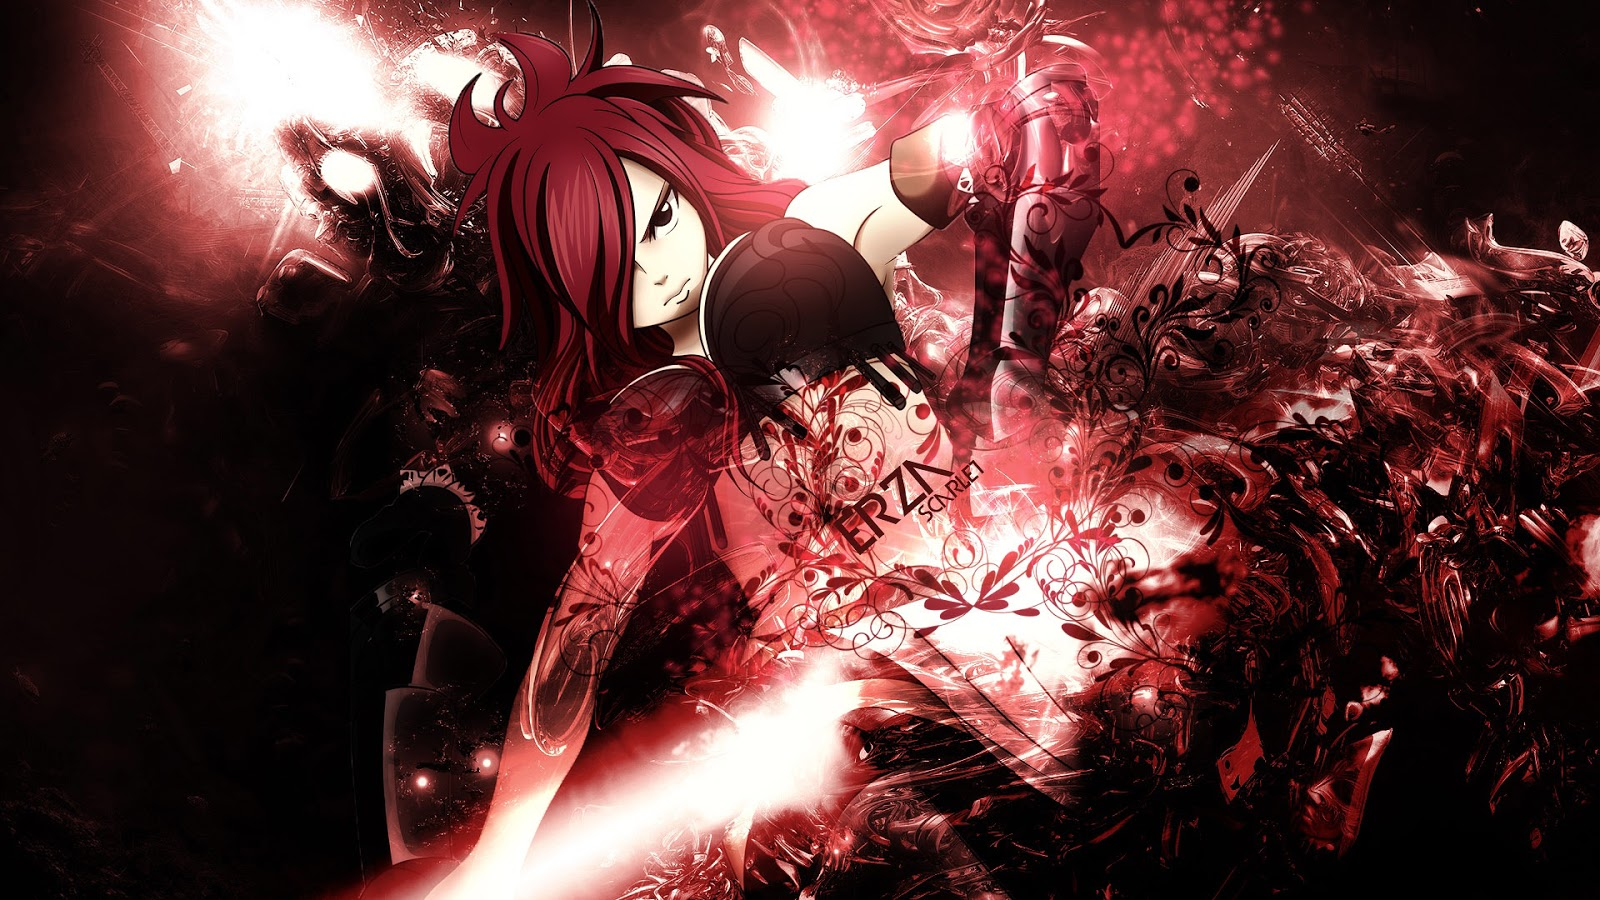 Sexy Erza Scarlet Fairy Tail Female Girl Red Hair Anime HD Wallpaper 1600x900